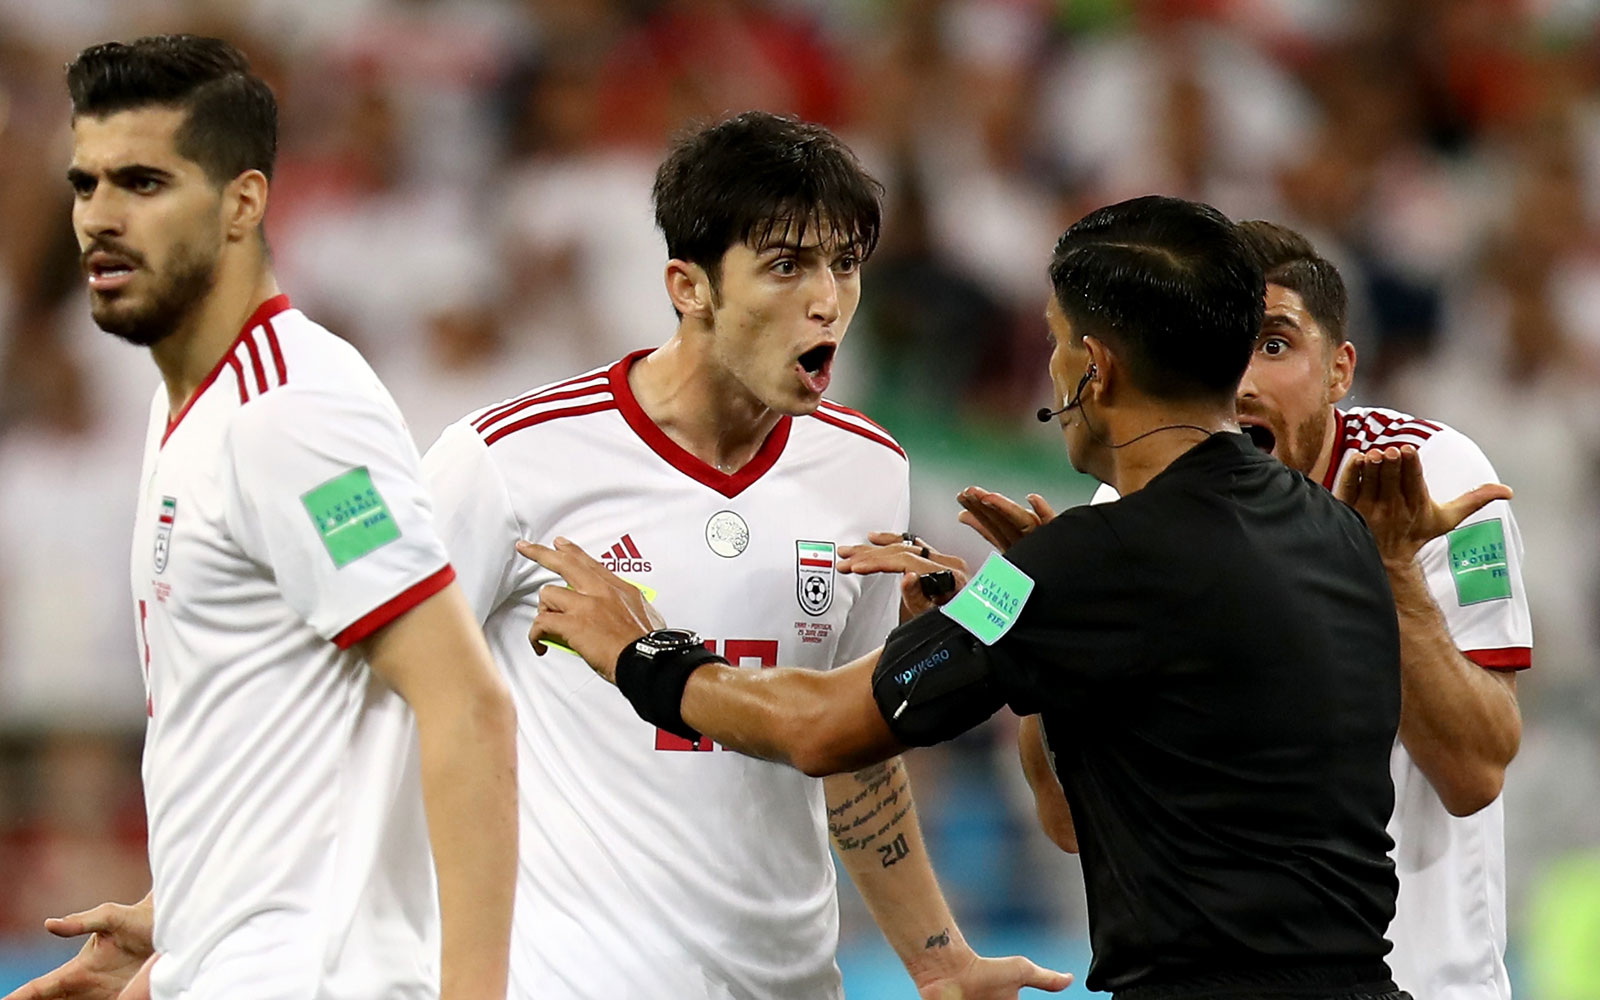 Iran players were livid with the referee in their draw vs. Portugal